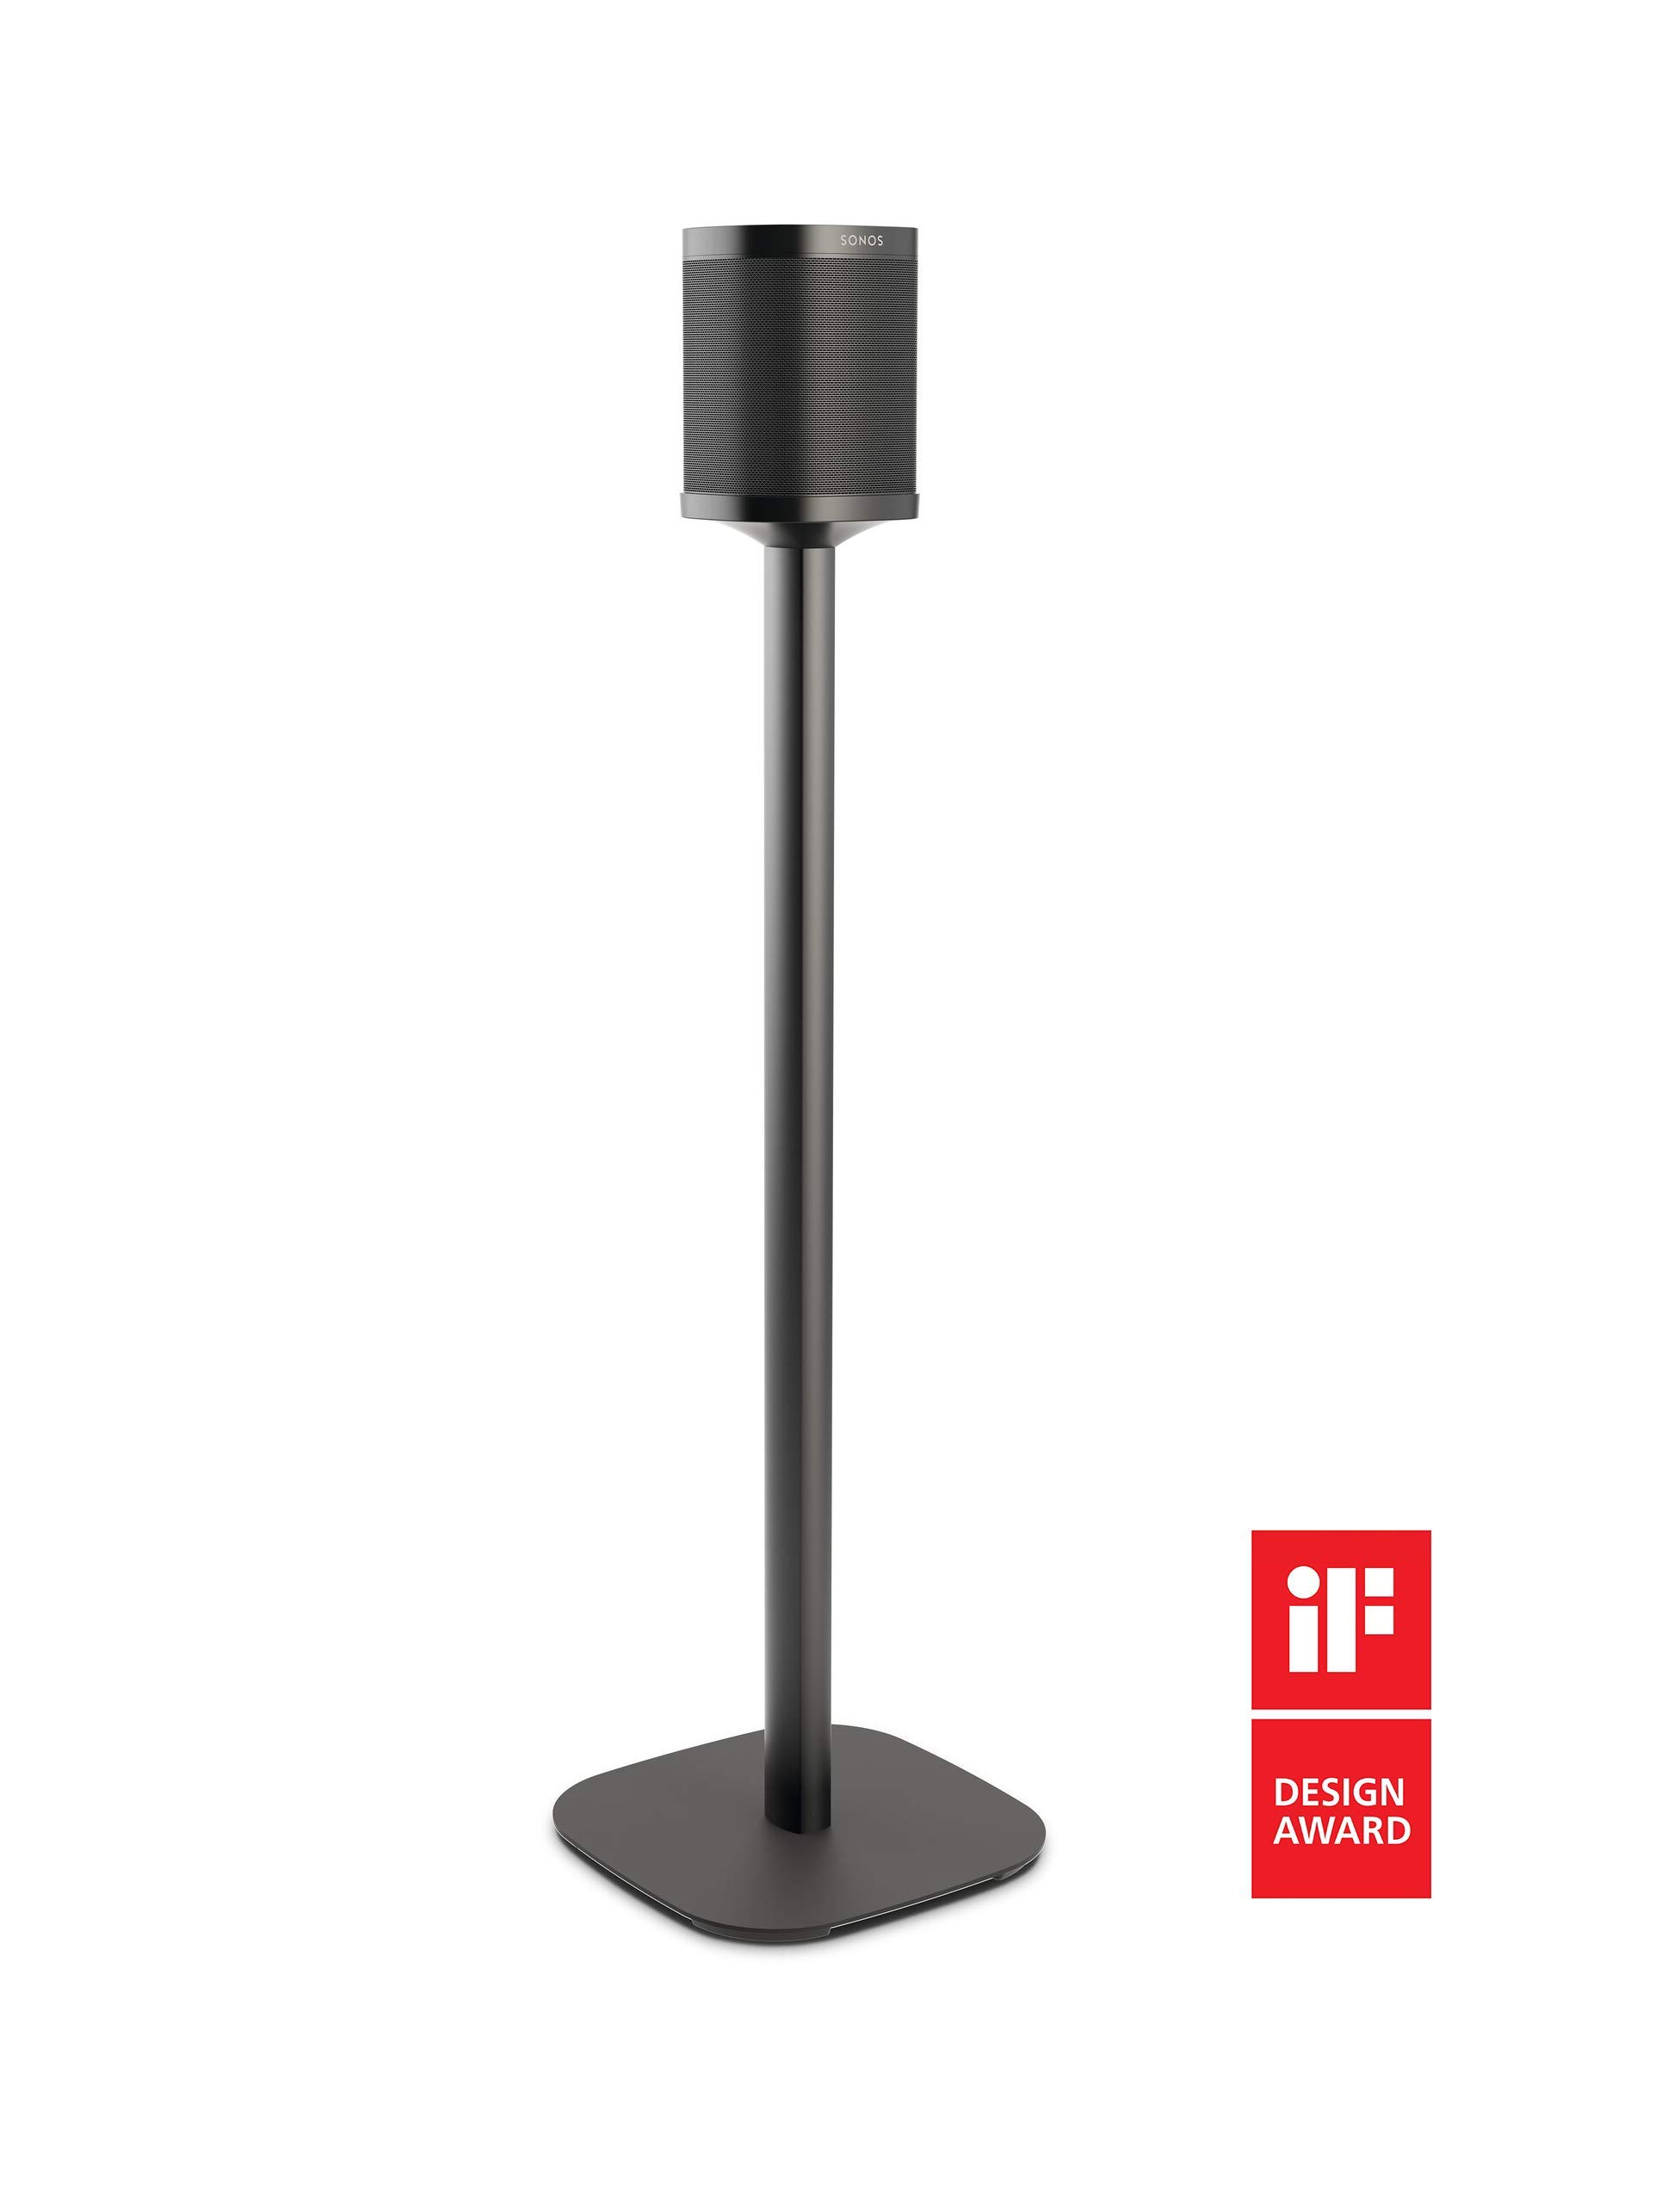 Vogel's Sound 4301 Speaker Stand for Sonos One & Play:1, Black 8153020 by Vogel's